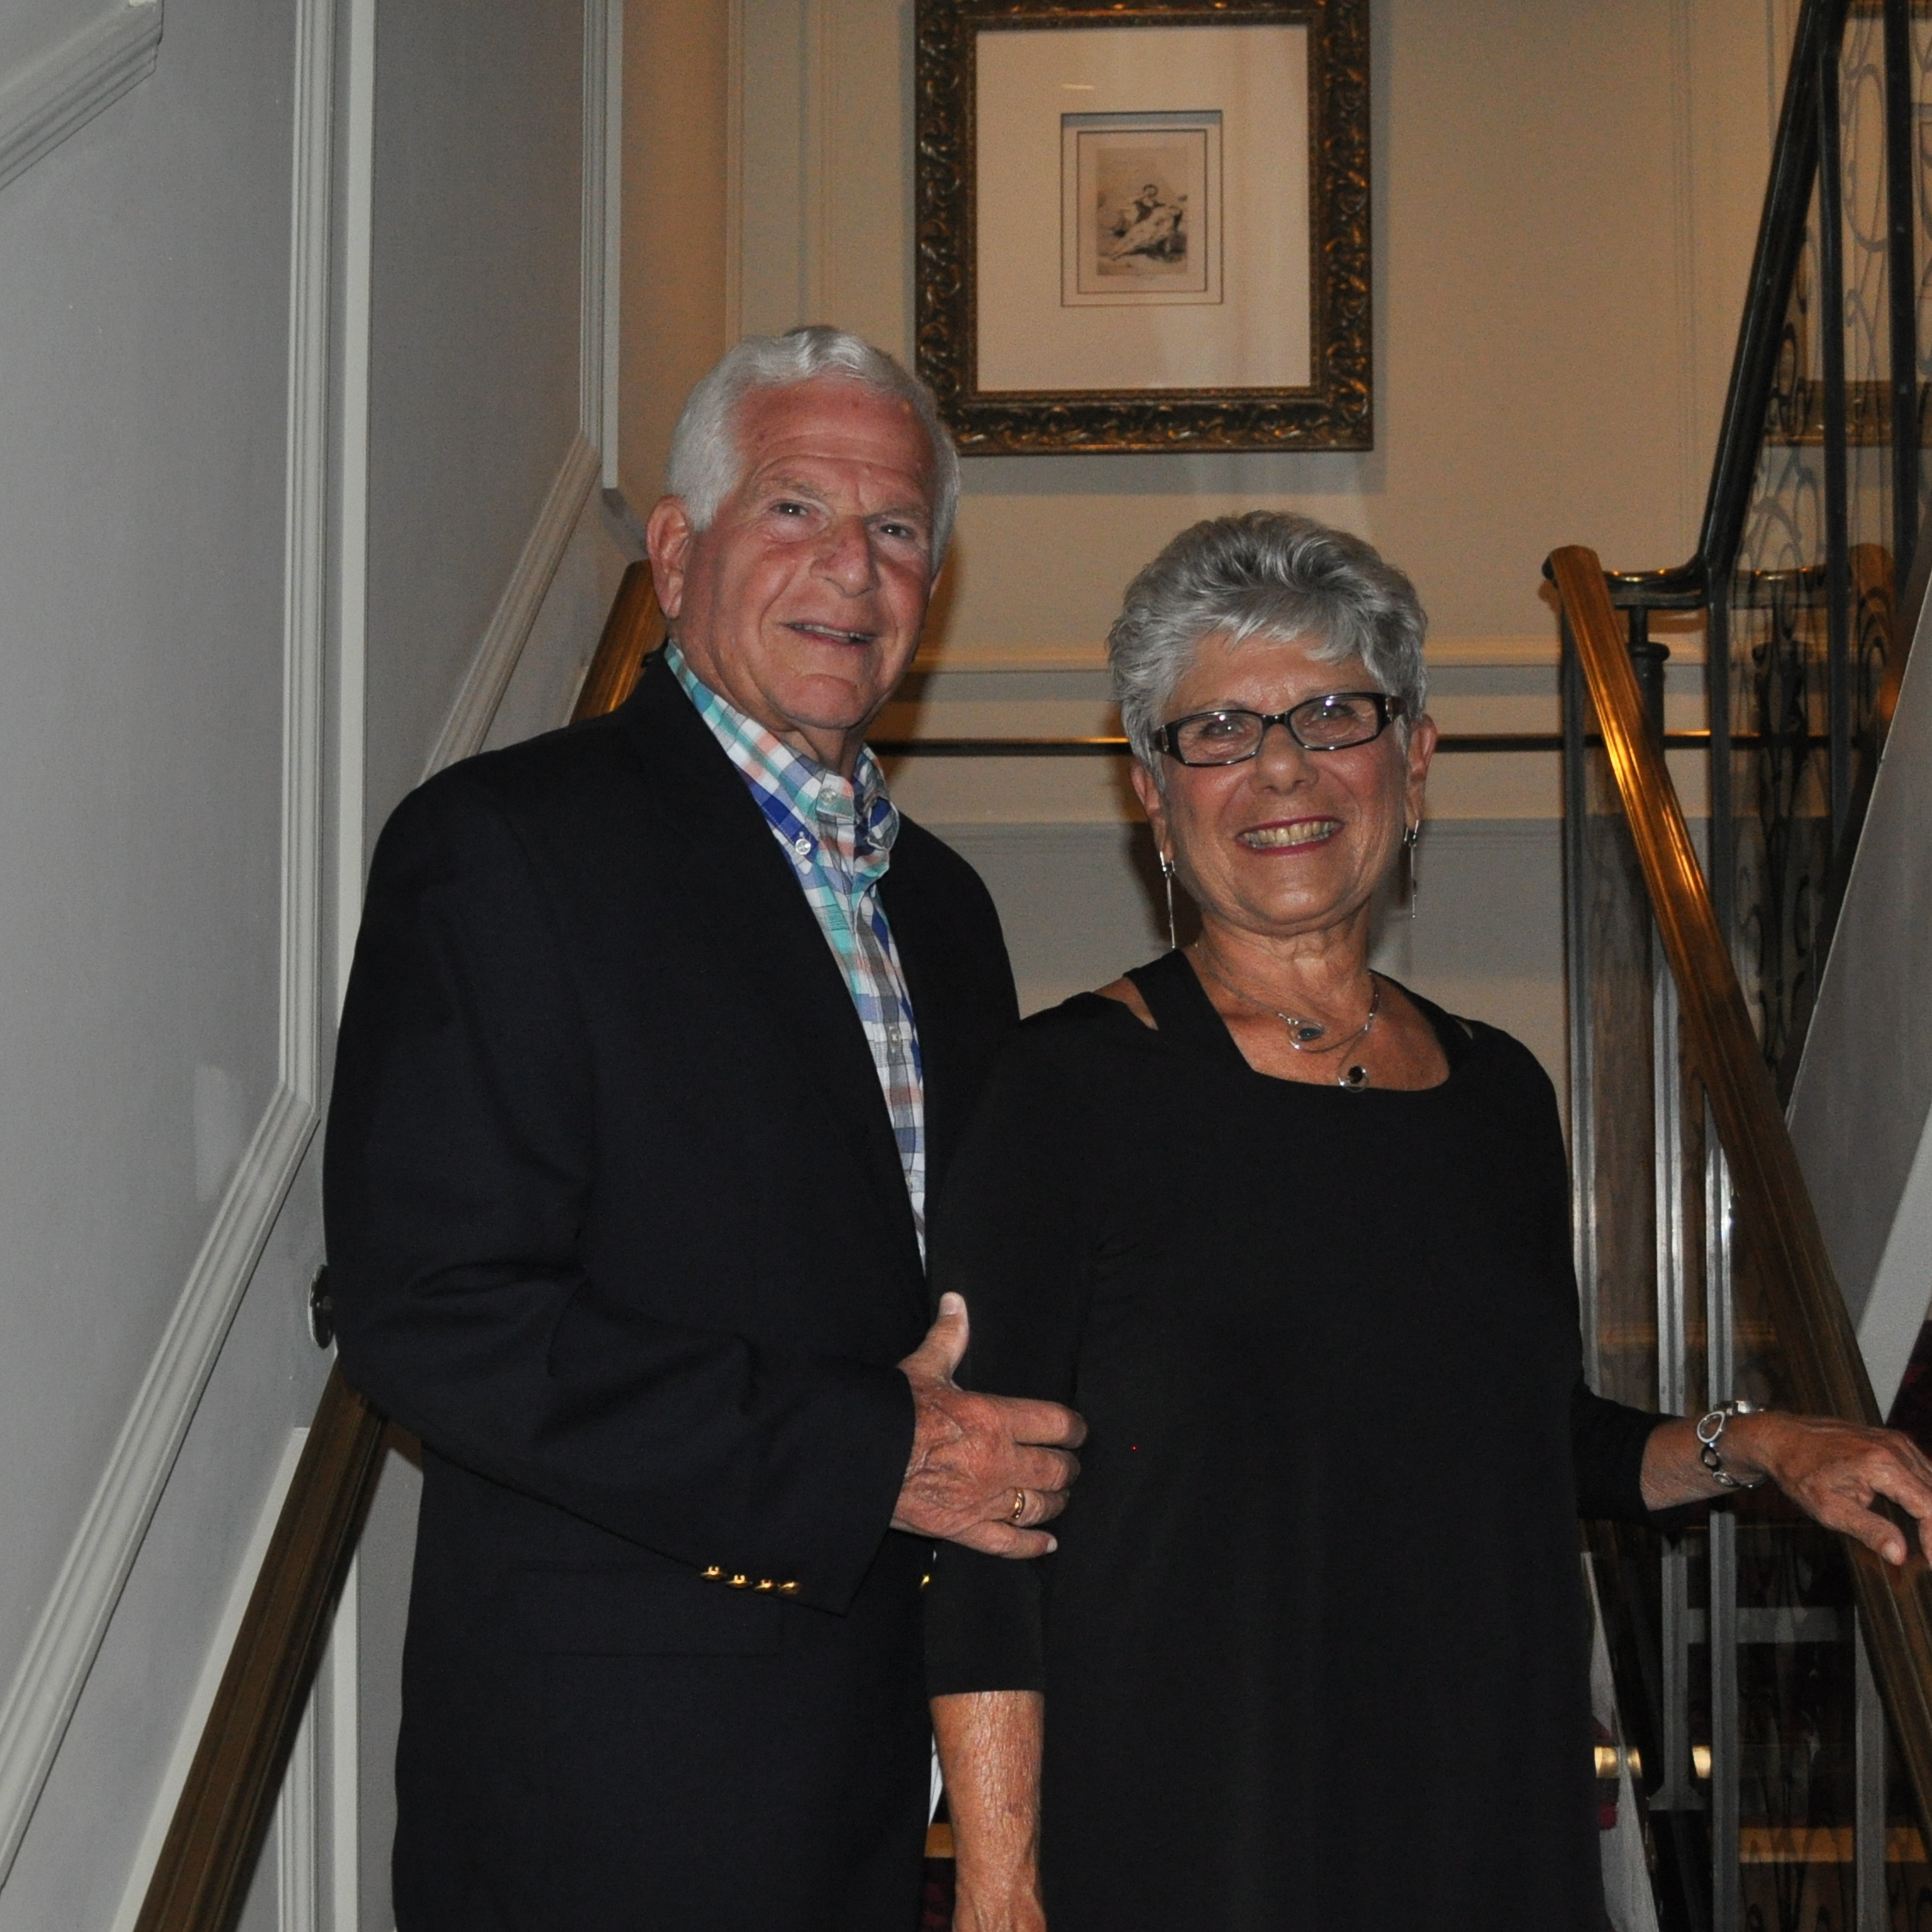 Karen R. Gerhardt, AS '64, and Lester A. Gerhardt, PhD '69, MS '64